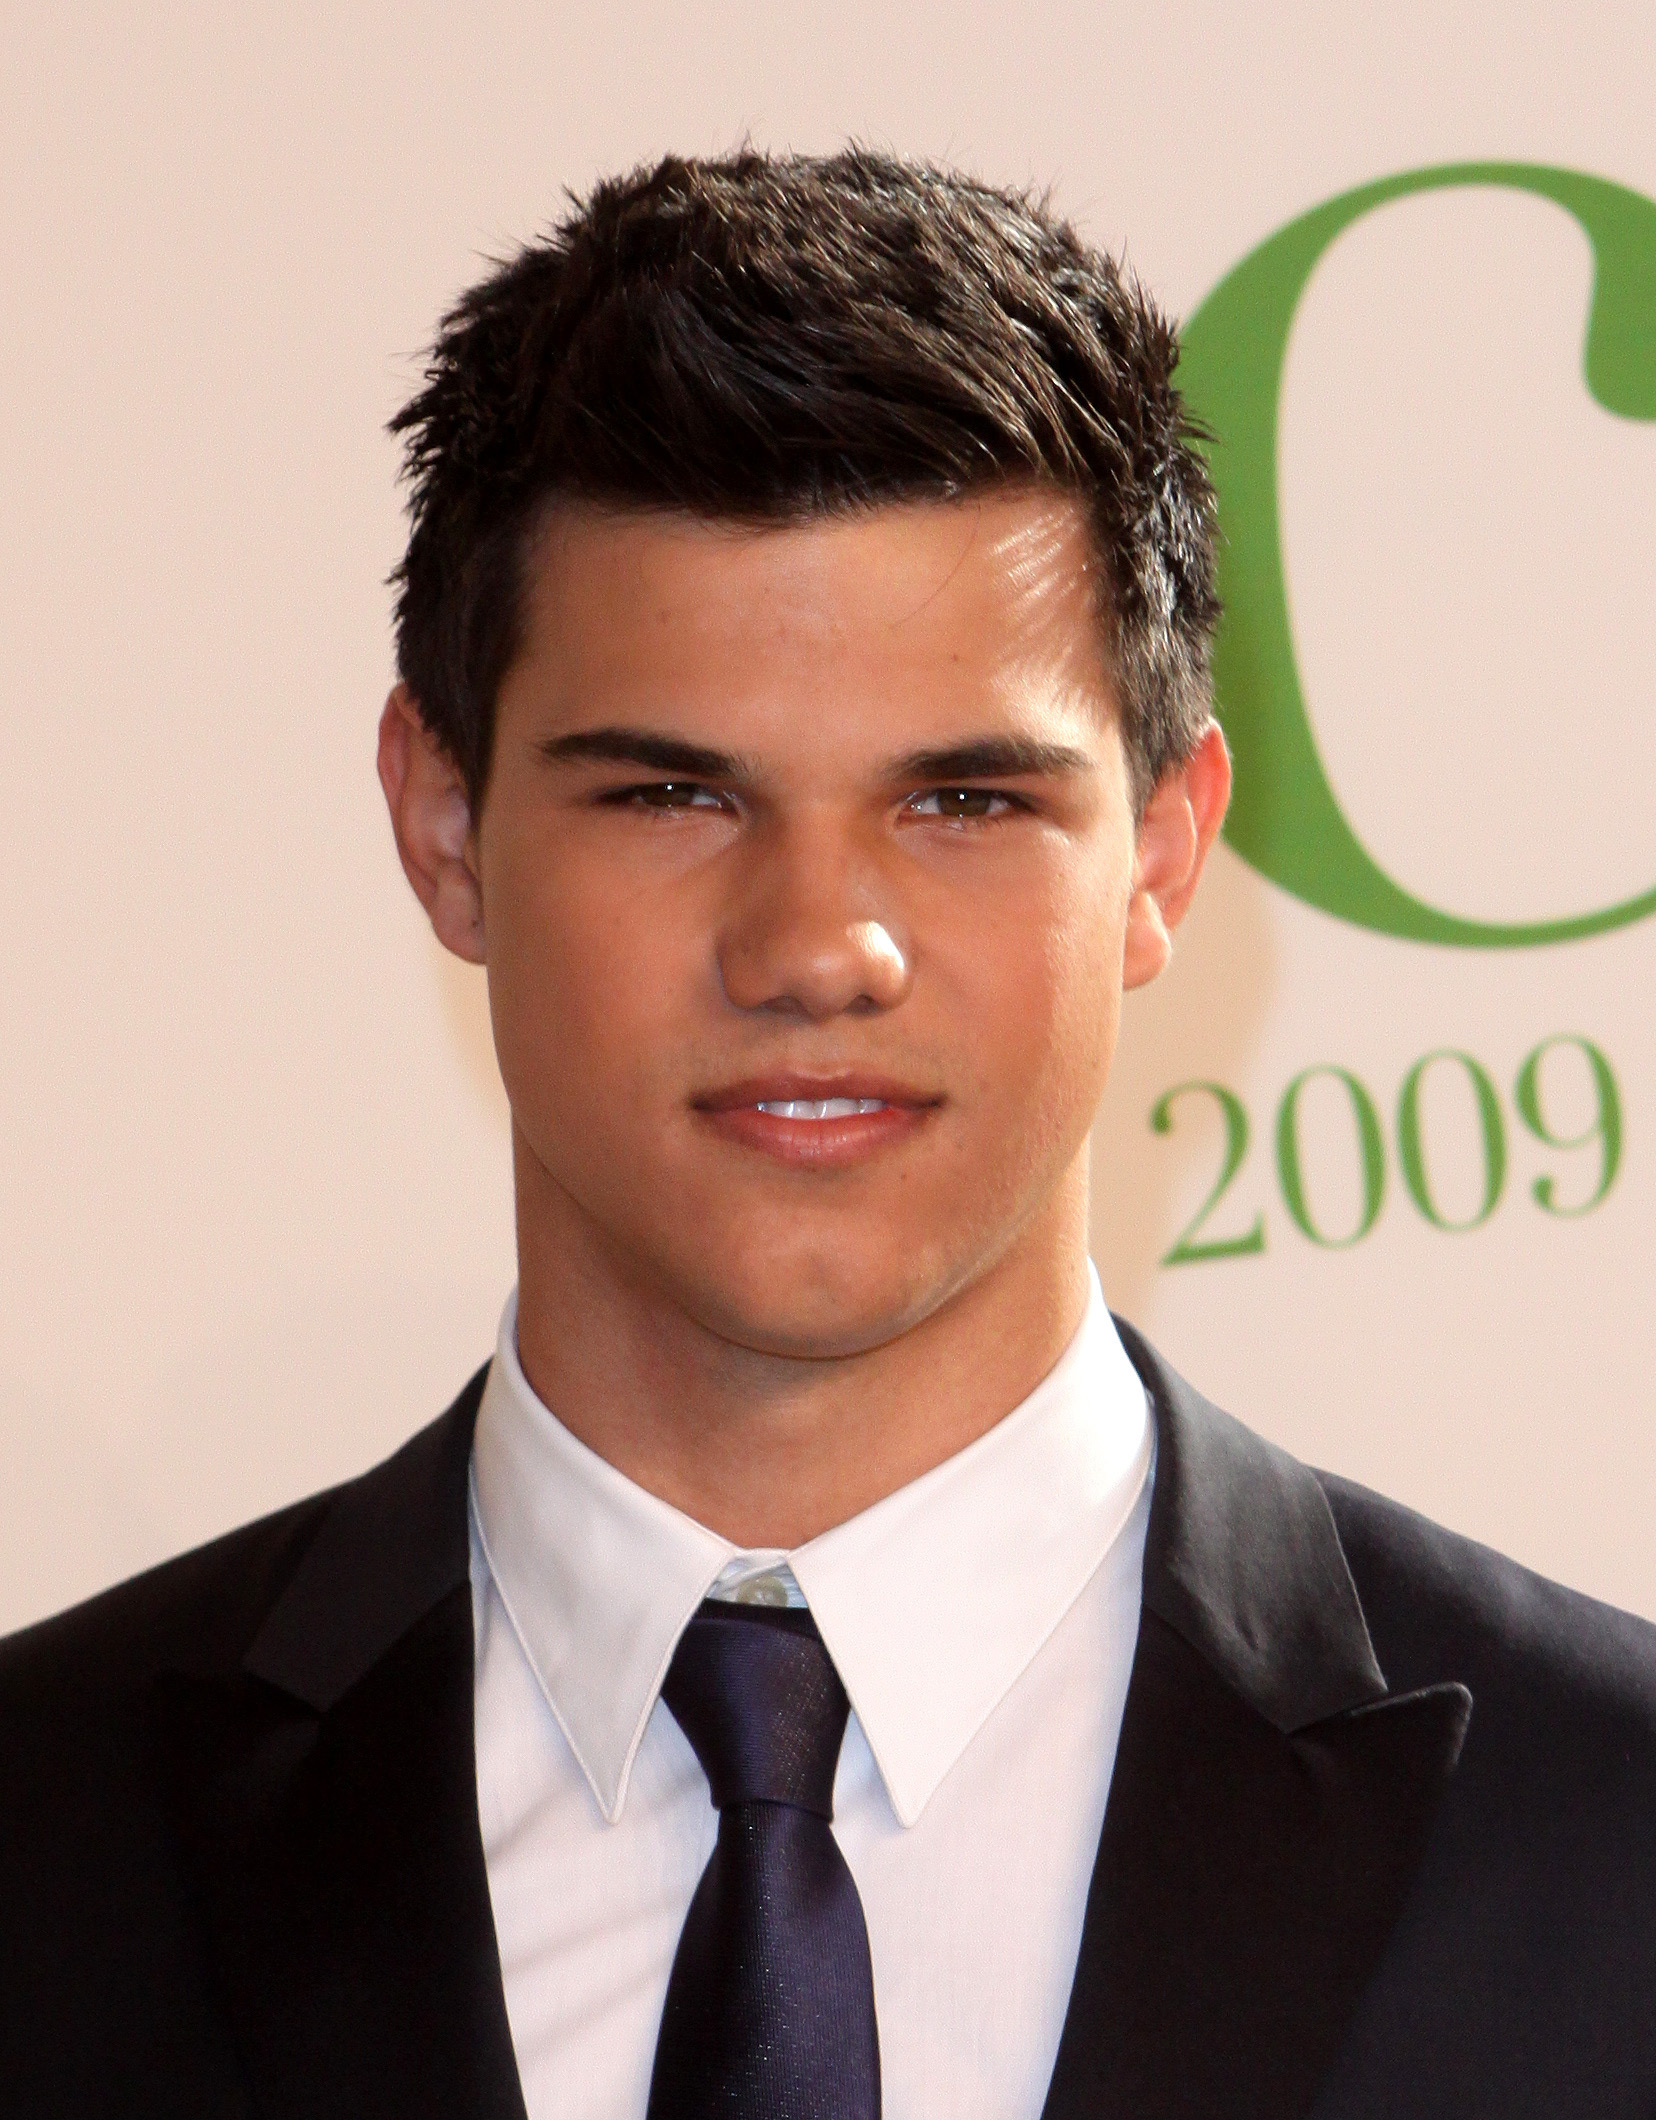 jacob black - Twilight Guys Photo (6725695) - Fanpop